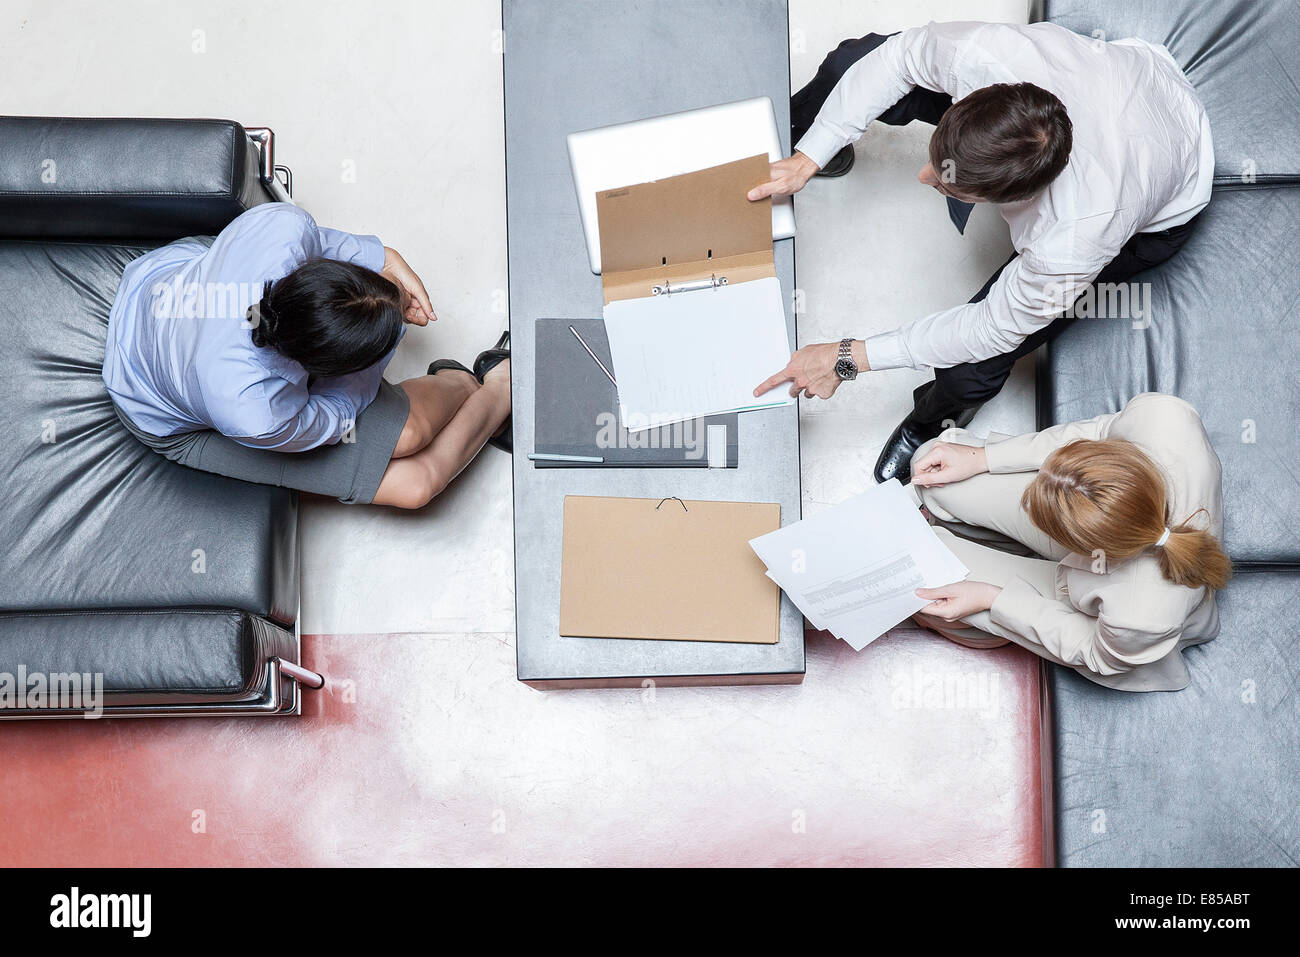 Executives in business meeting, overhead view - Stock Image